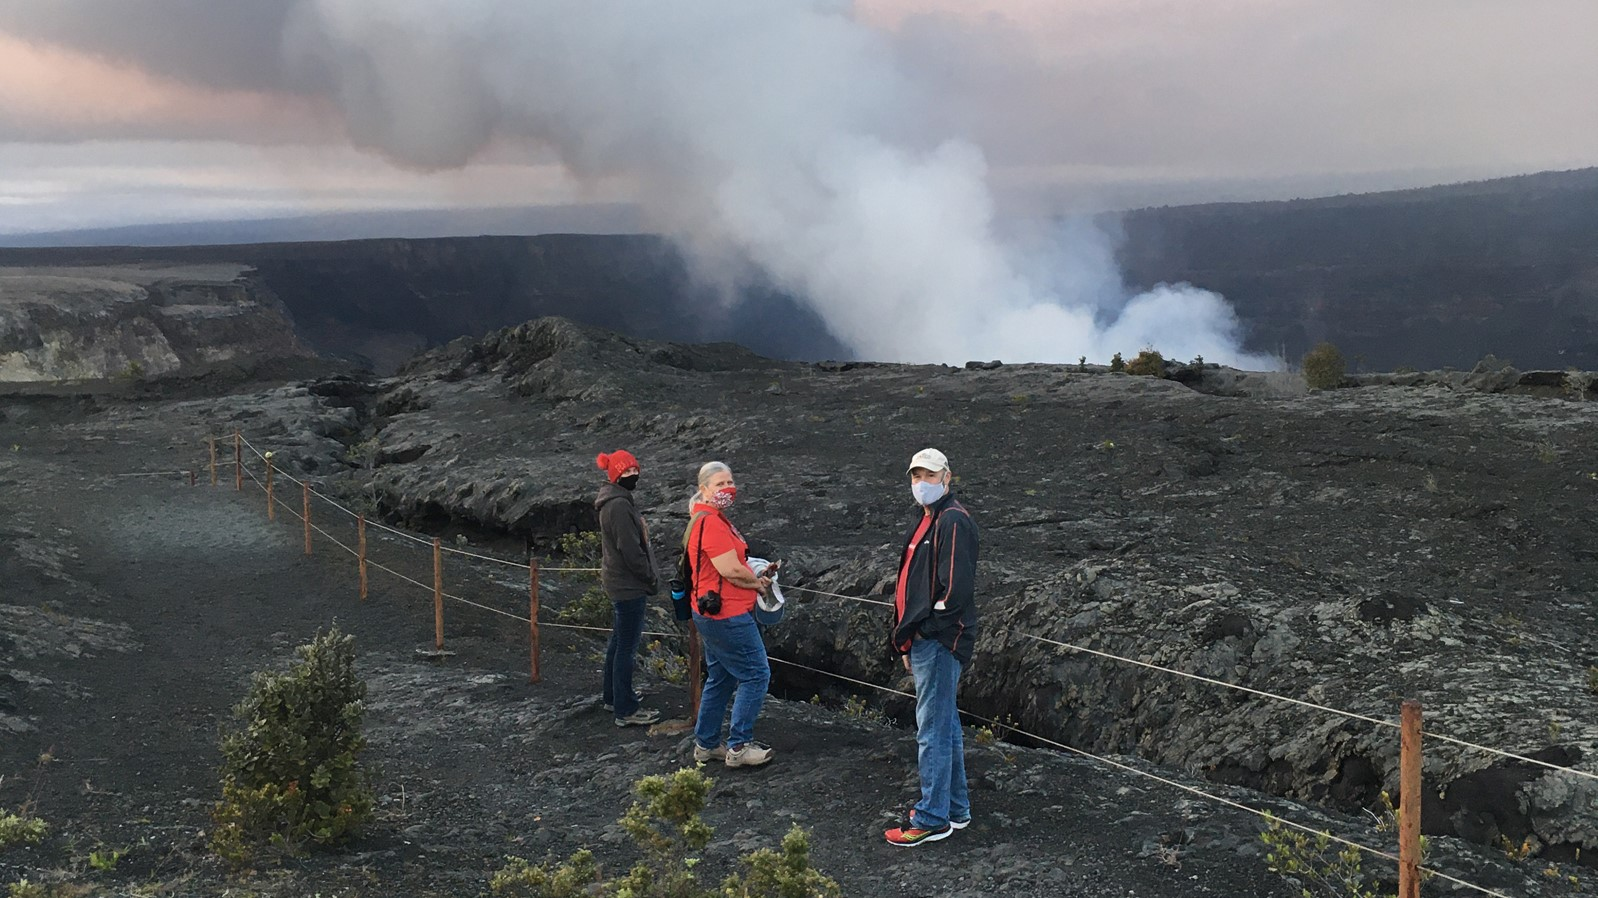 Chancellor Irwin, VC Roney and Dean Mike stand at eruption site, plume in background.